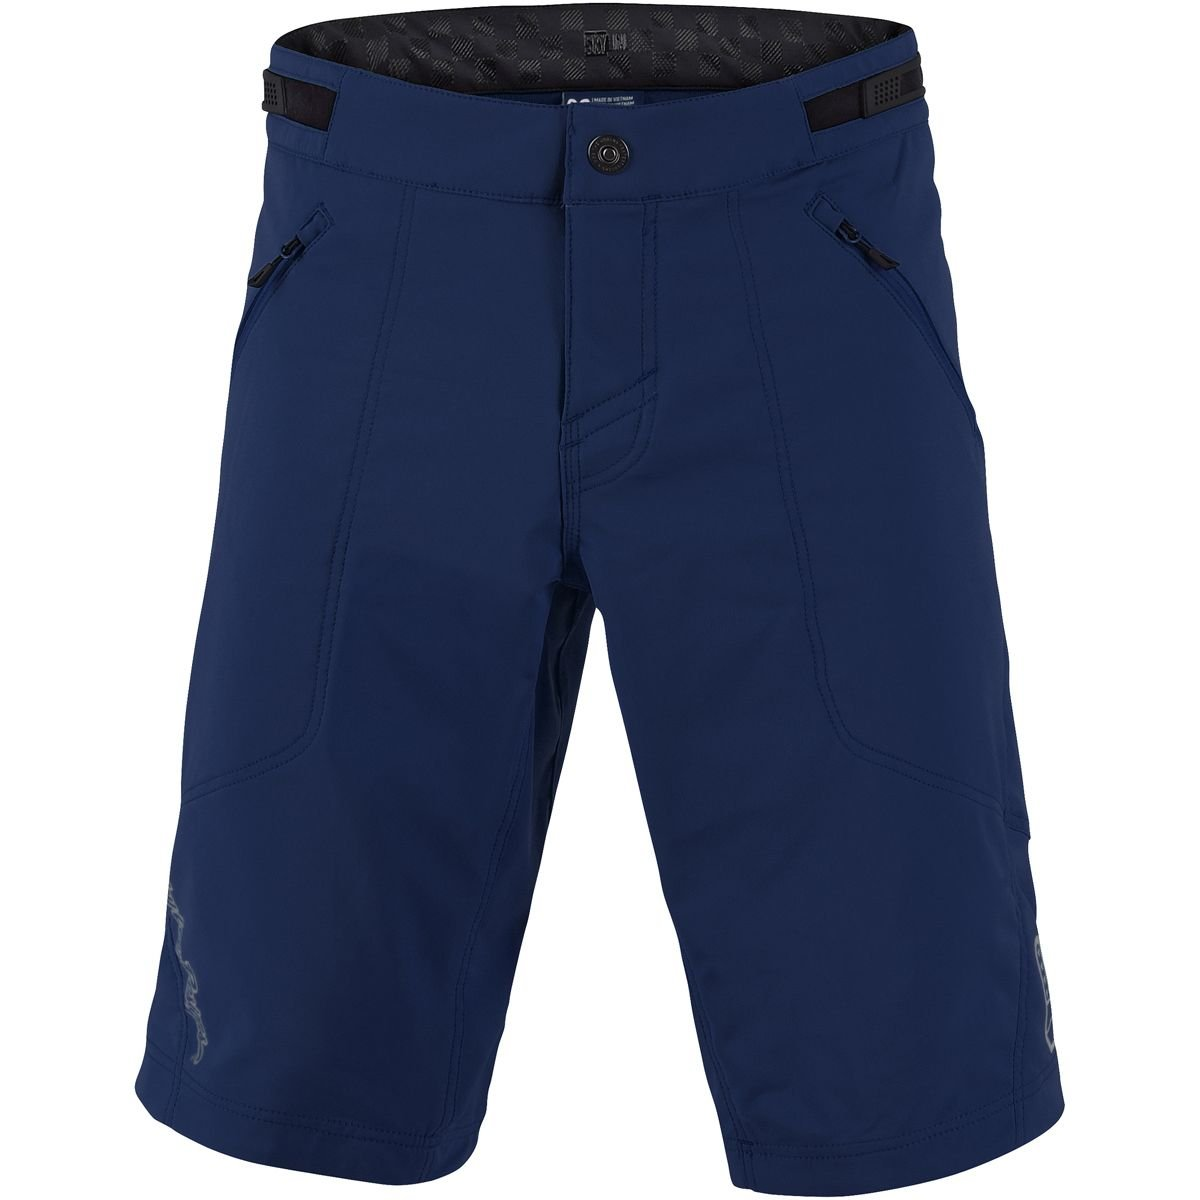 Troy Lee Designs Skyline Short Shell - Men's Solid Navy, 34 by Troy Lee Designs